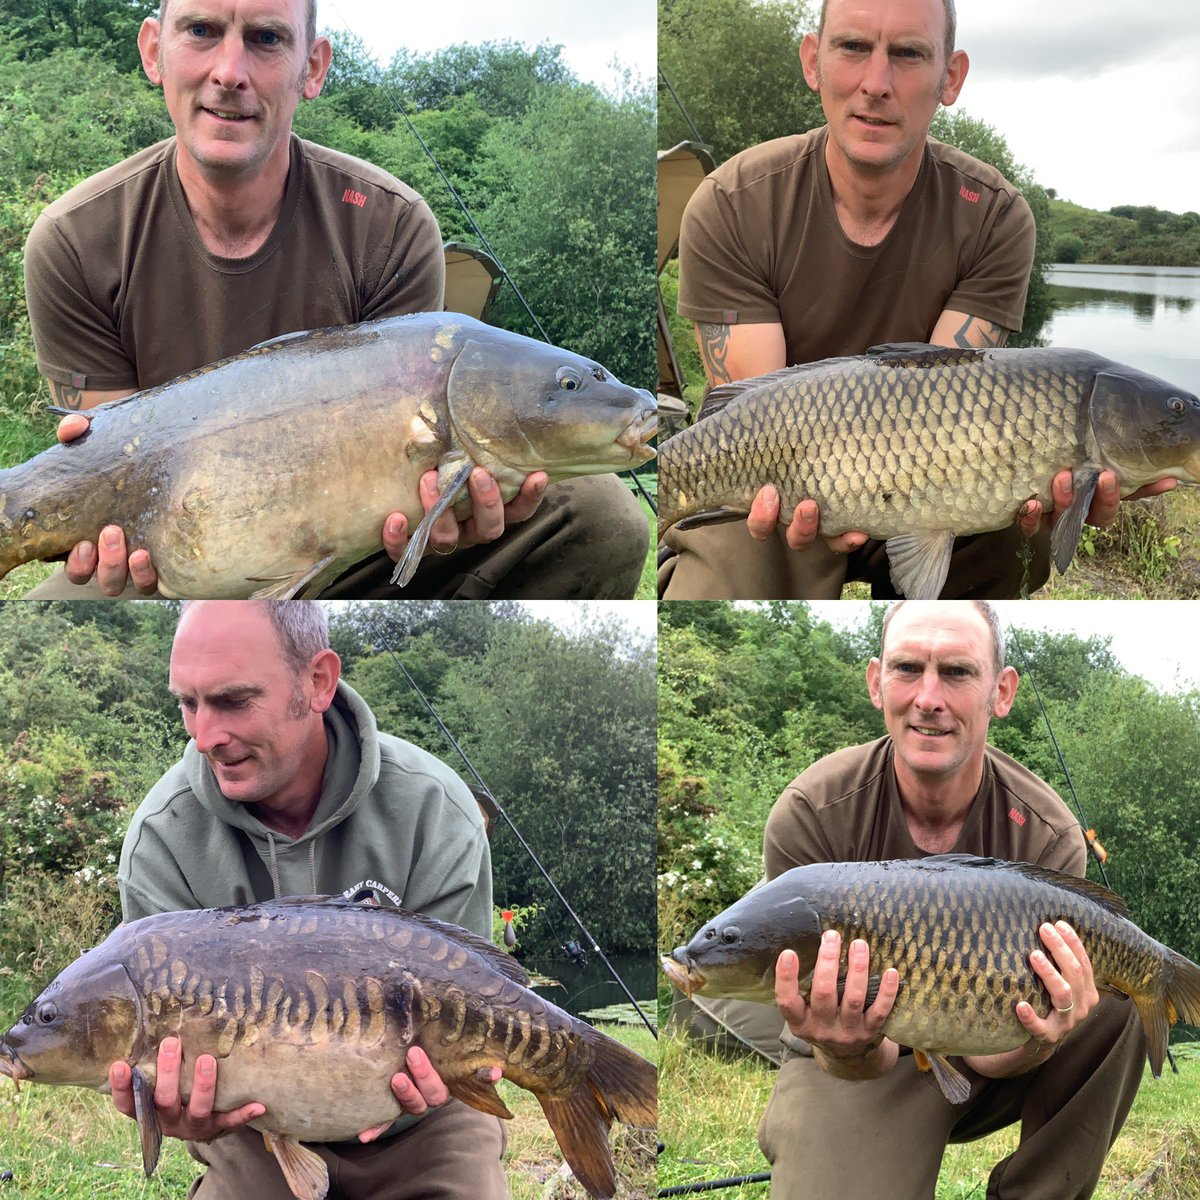 Mint <b>Session</b> on the syndicate #carp #carpfishing #fishing #peakycarper https://t.co/TFdgRsLzj